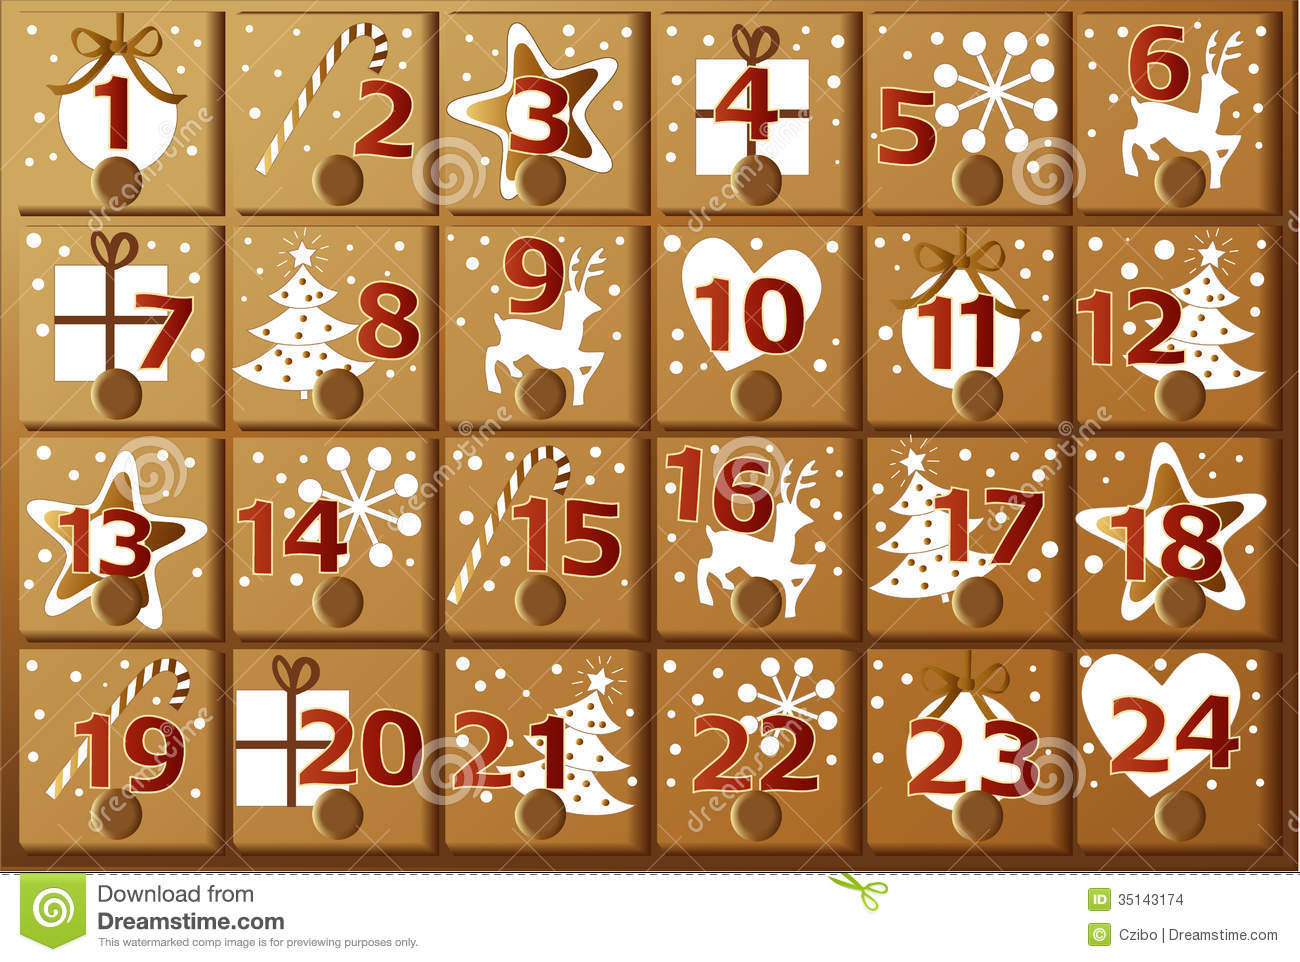 Christmas Calendar Pictures : The venice experience countdown to christmas italian